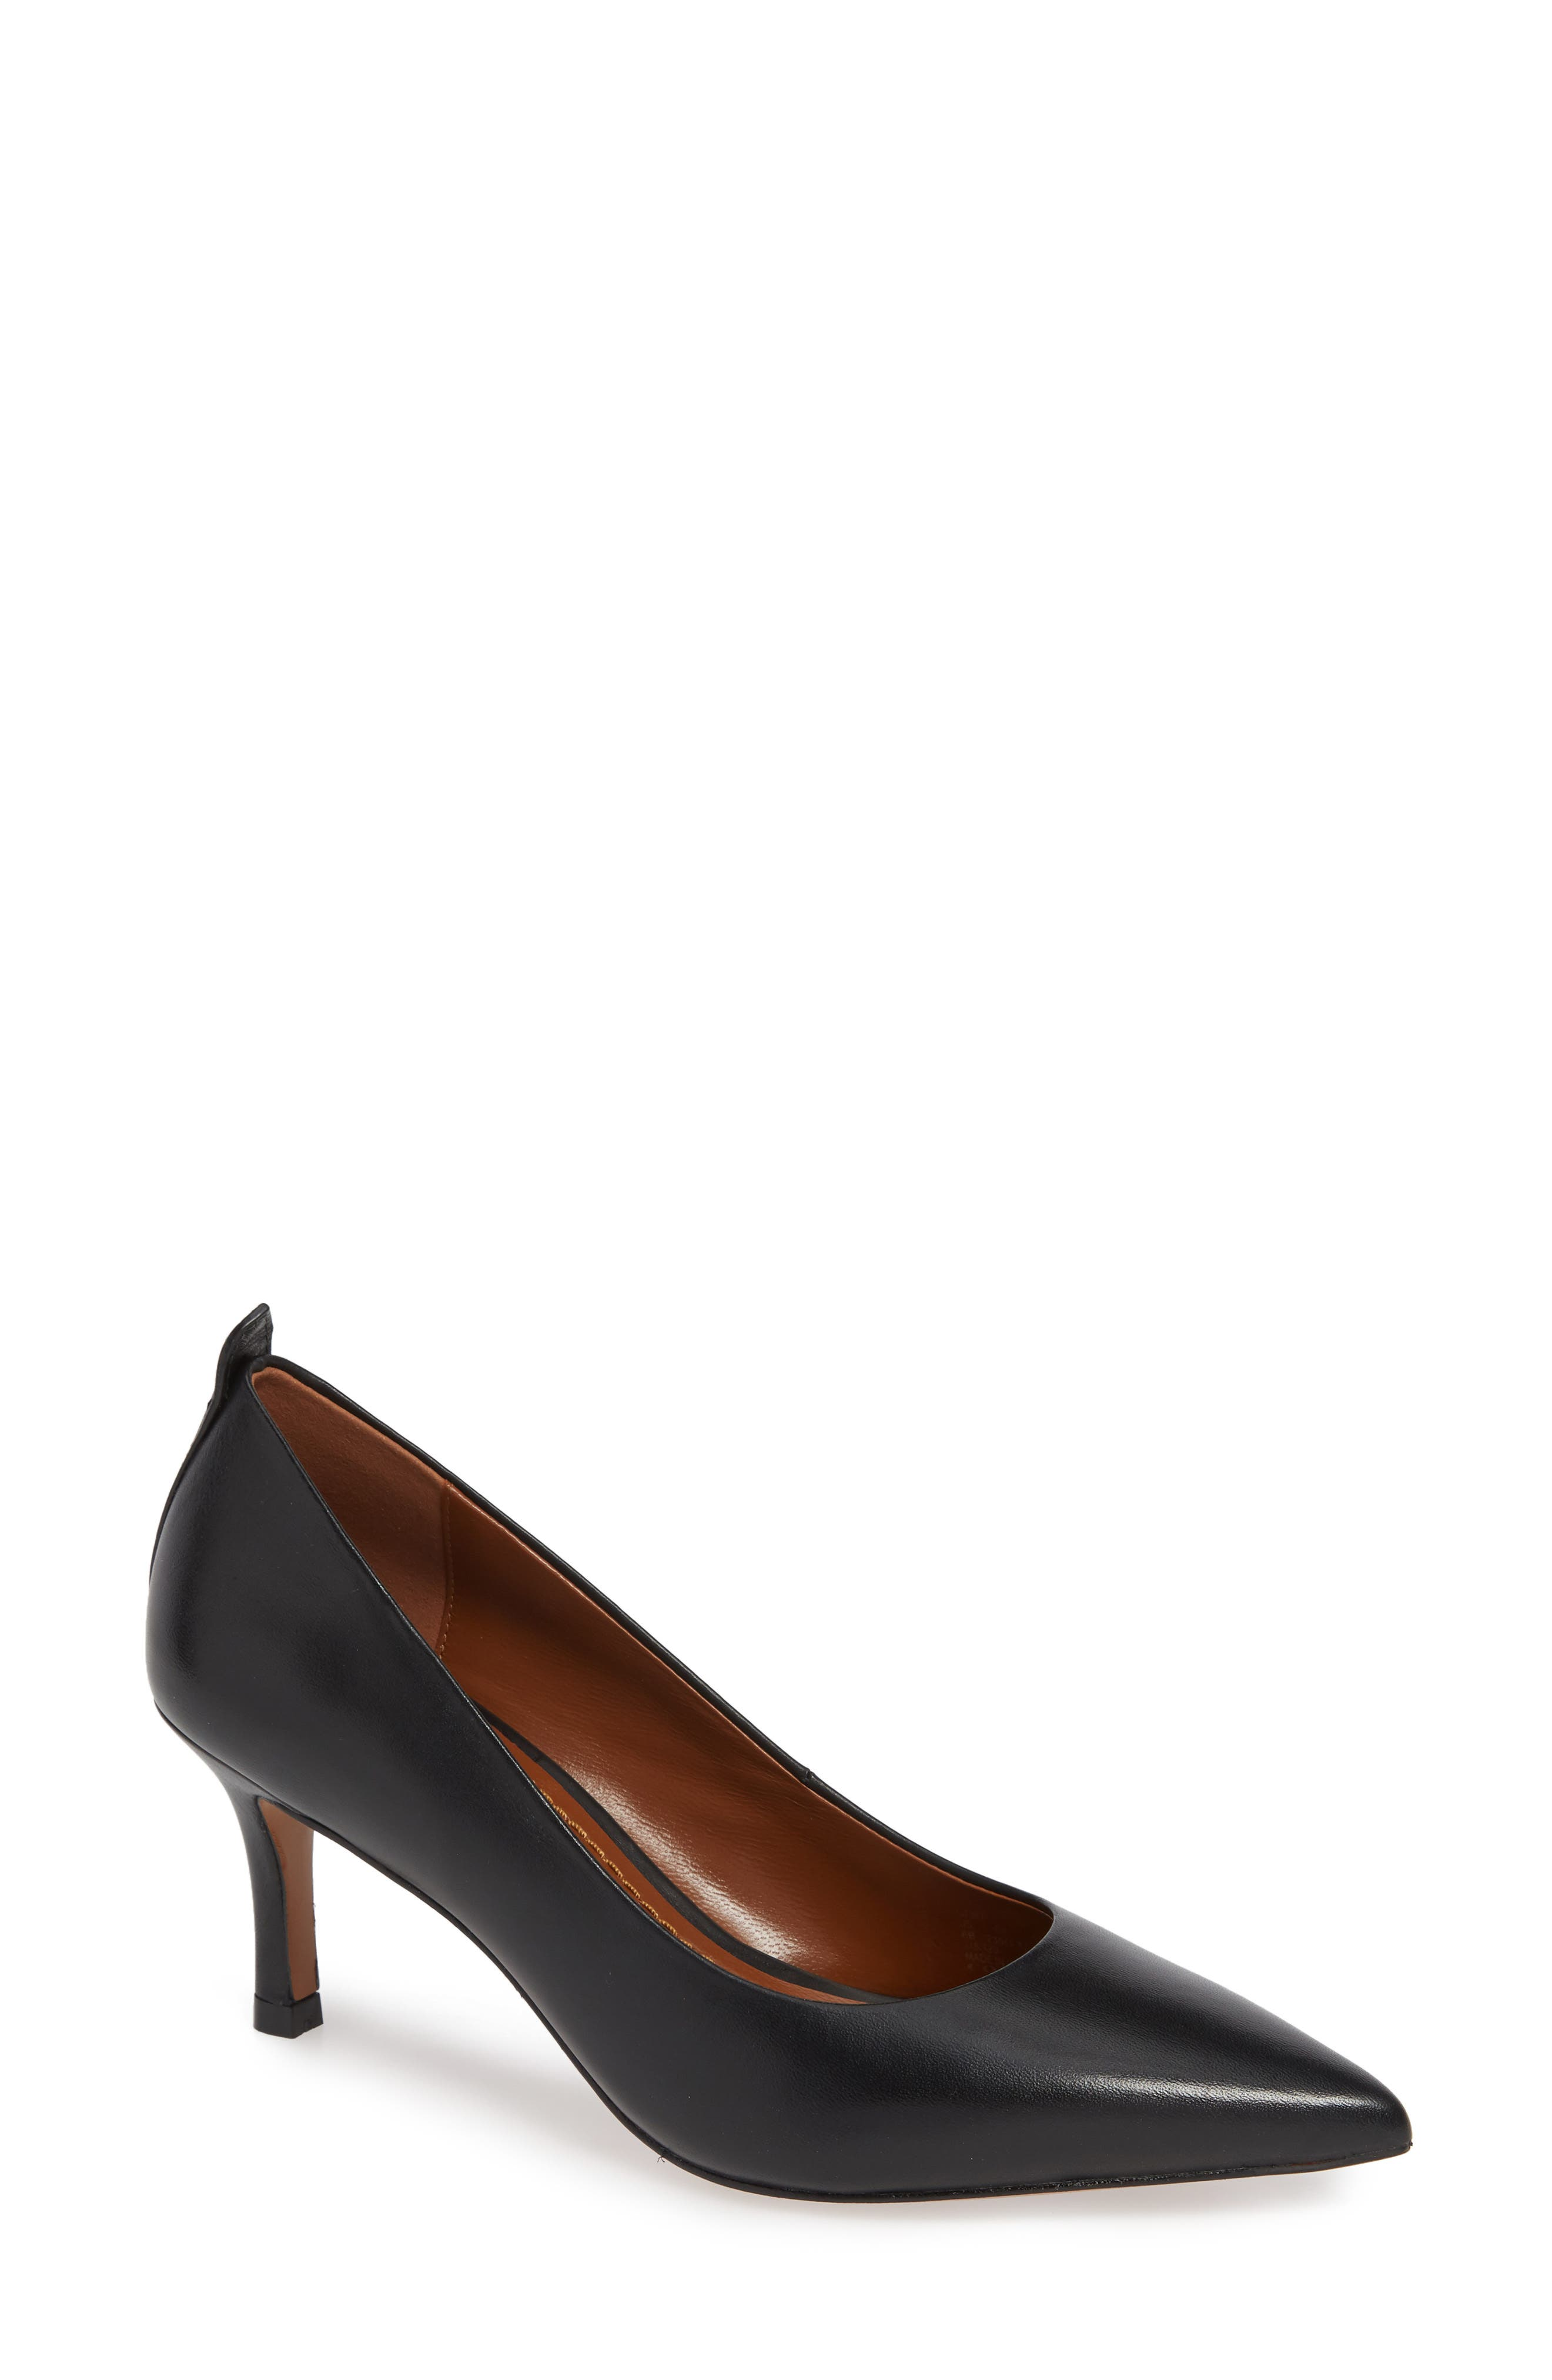 COACH Waverly Mid Heel Pump, Main, color, BLACK LEATHER